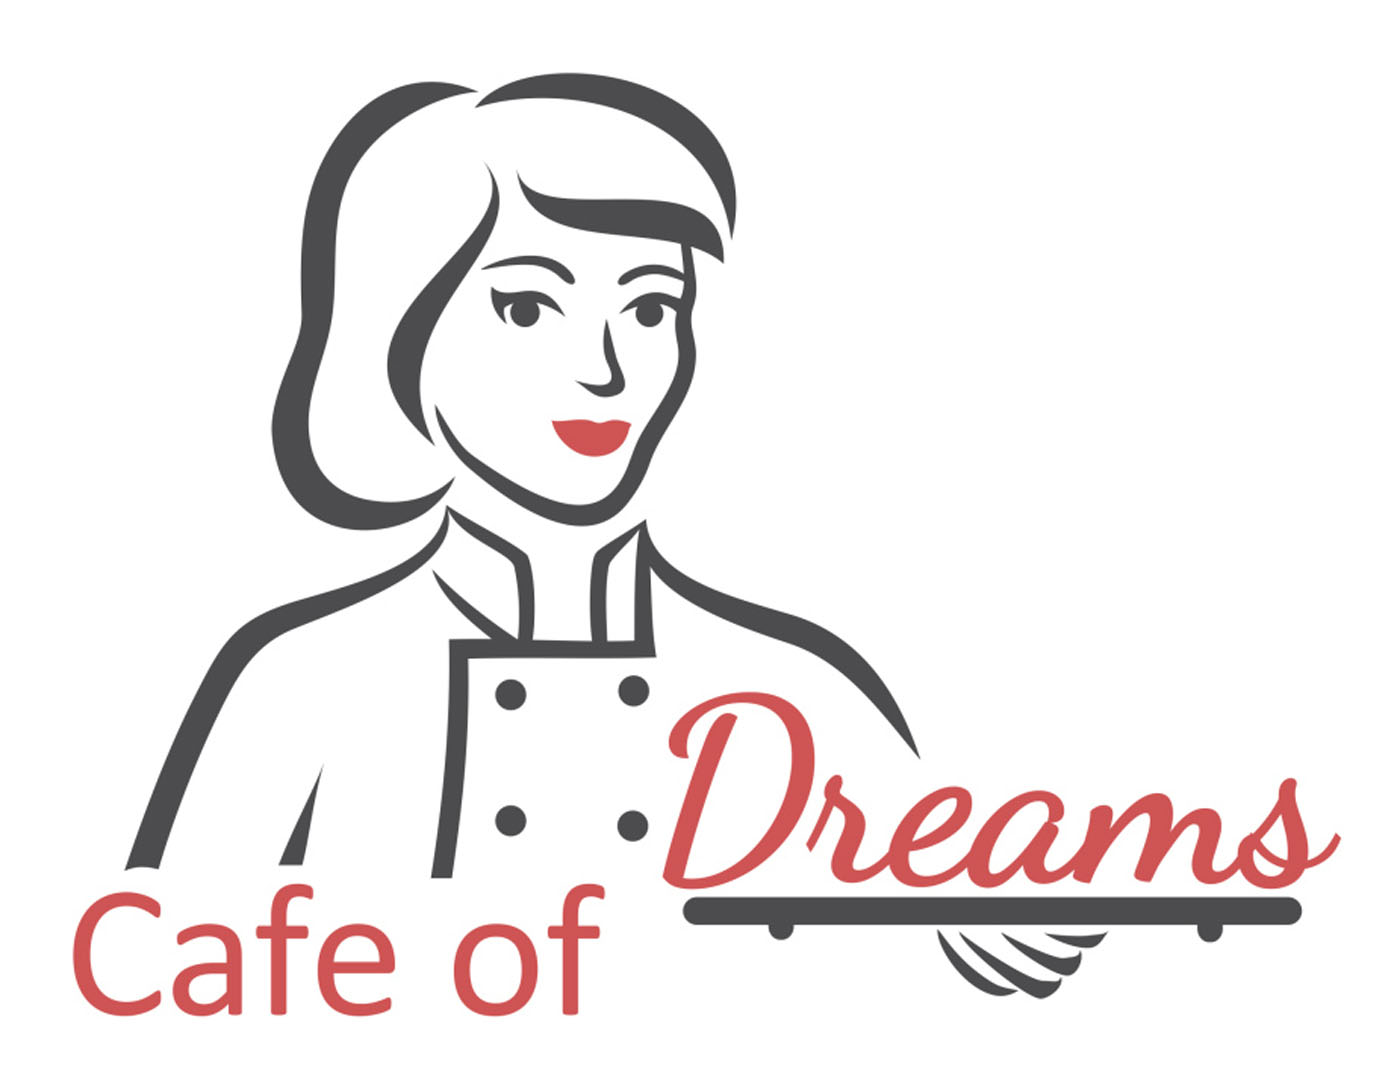 The Cafe of Dreams